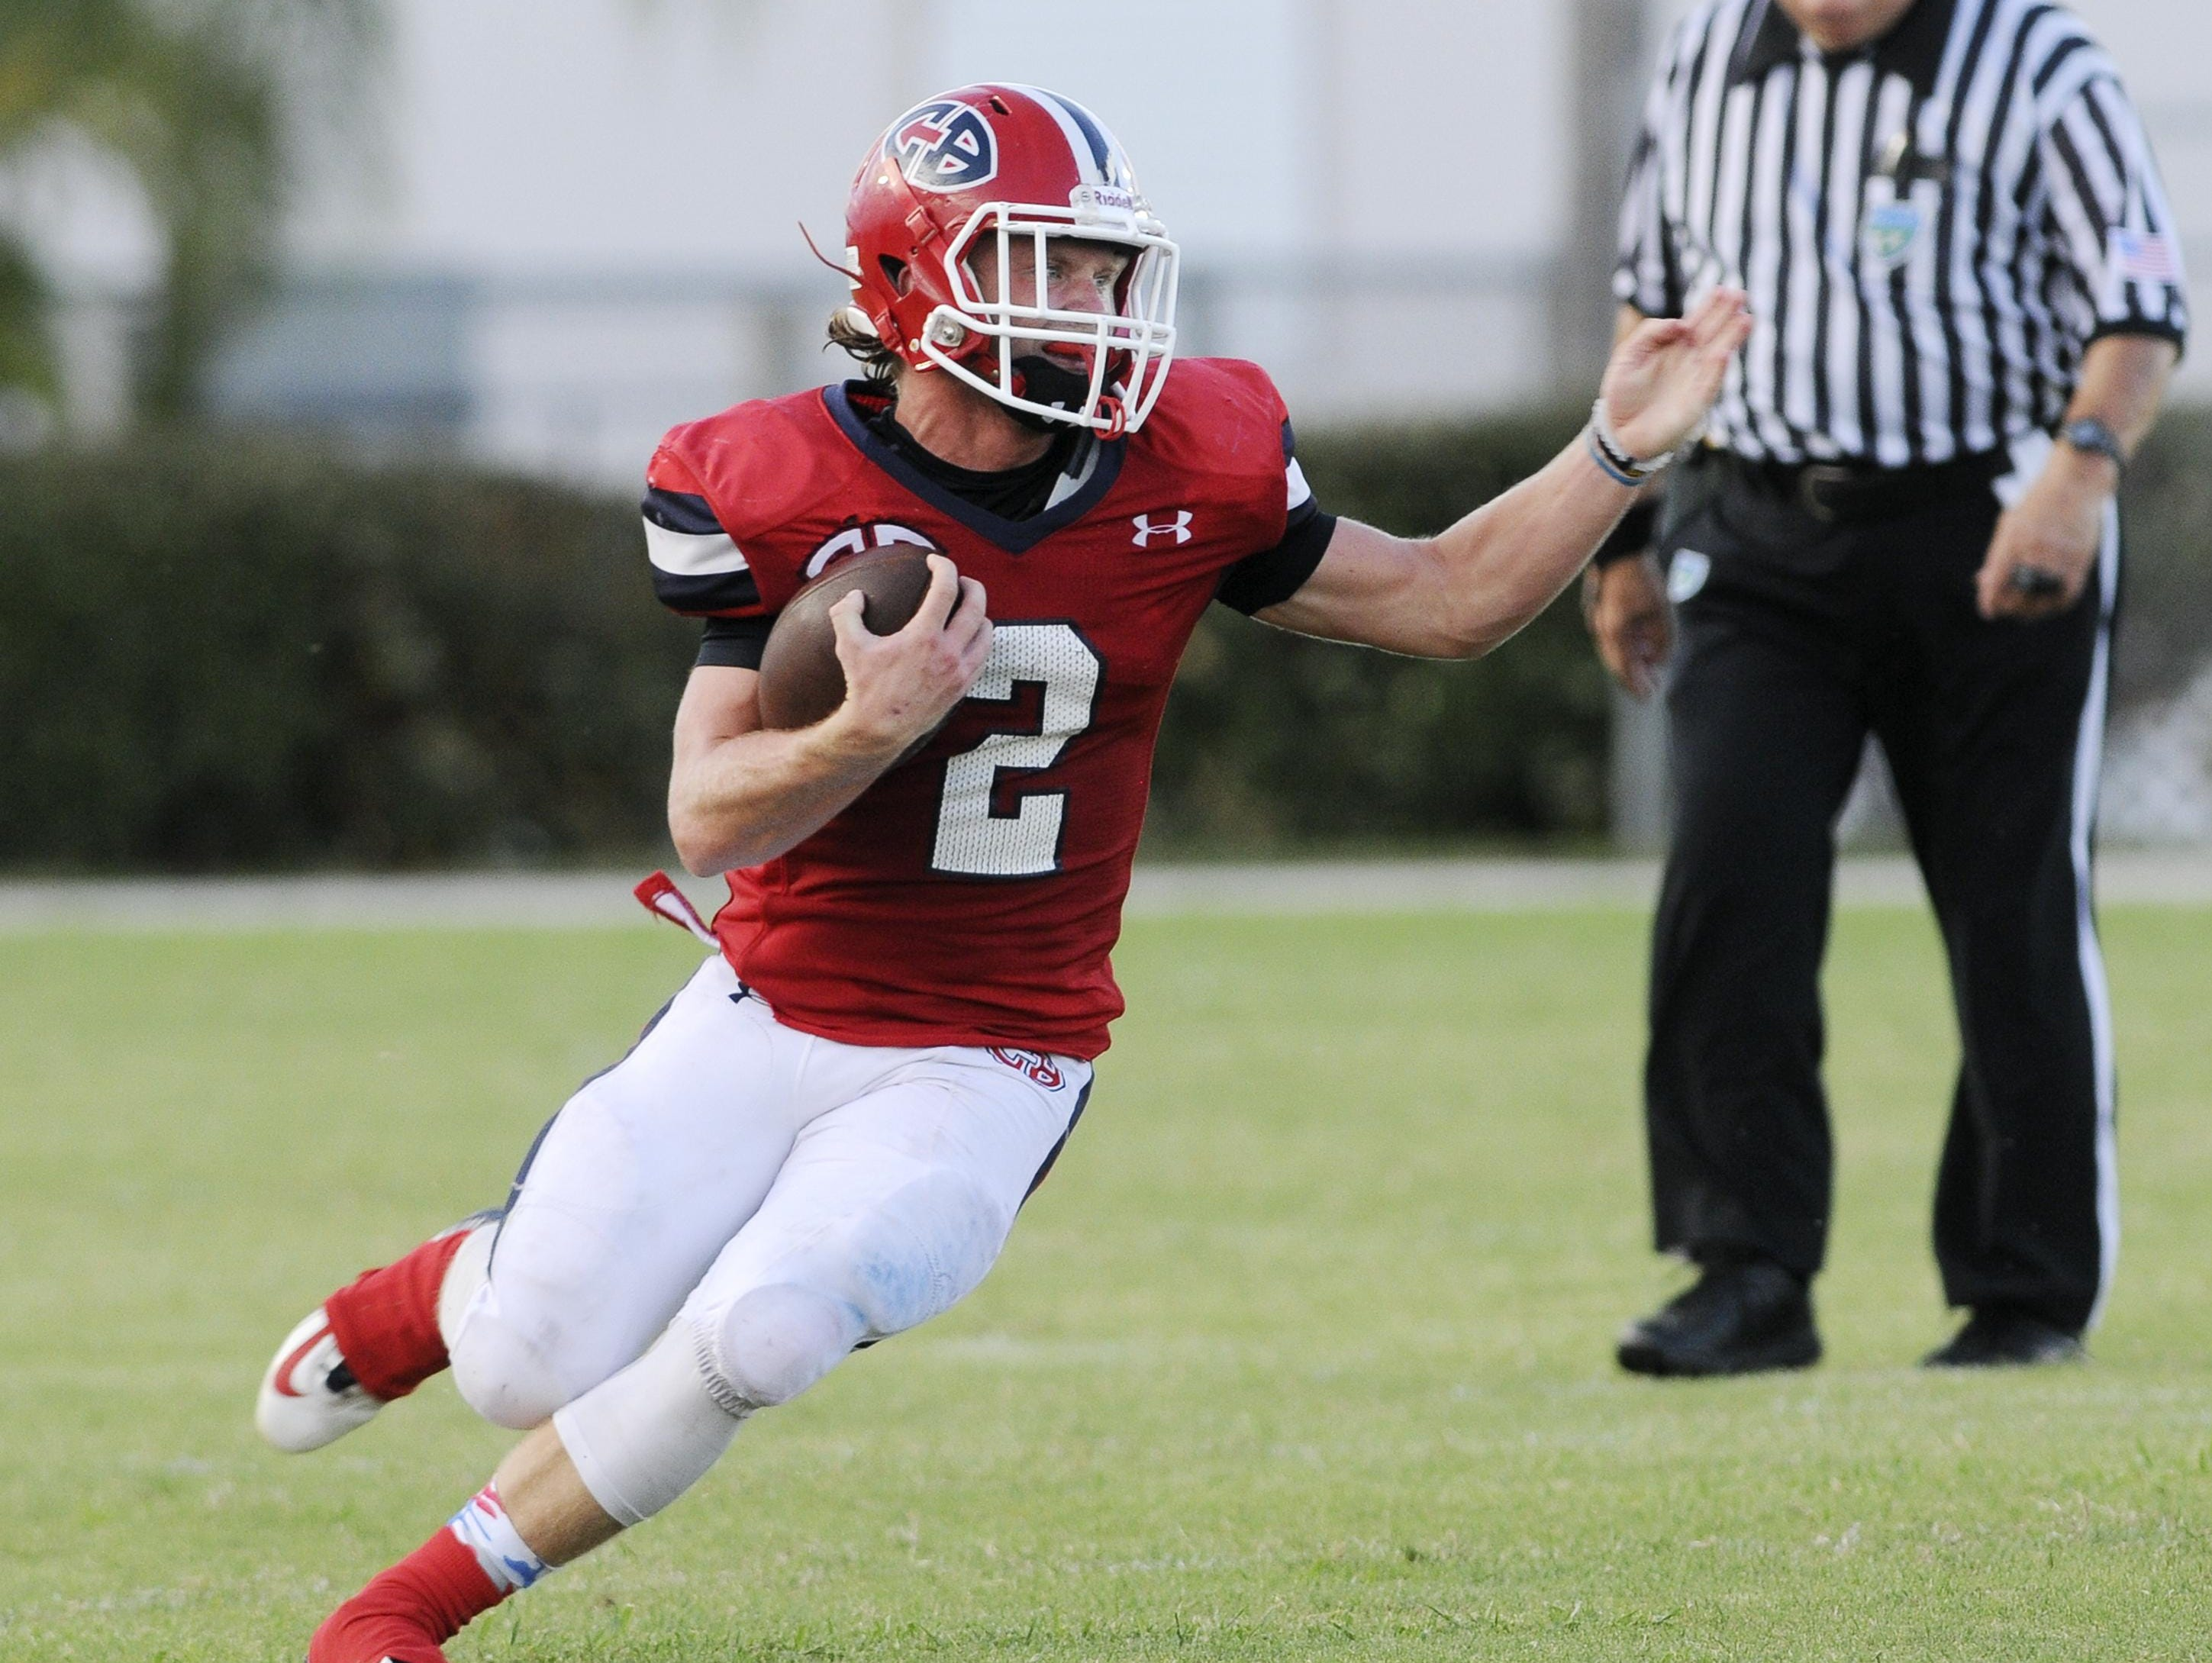 Cocoa Beach's David Demeter is FLORIDA TODAY's Athlete of the Week for Sept. 5-11.